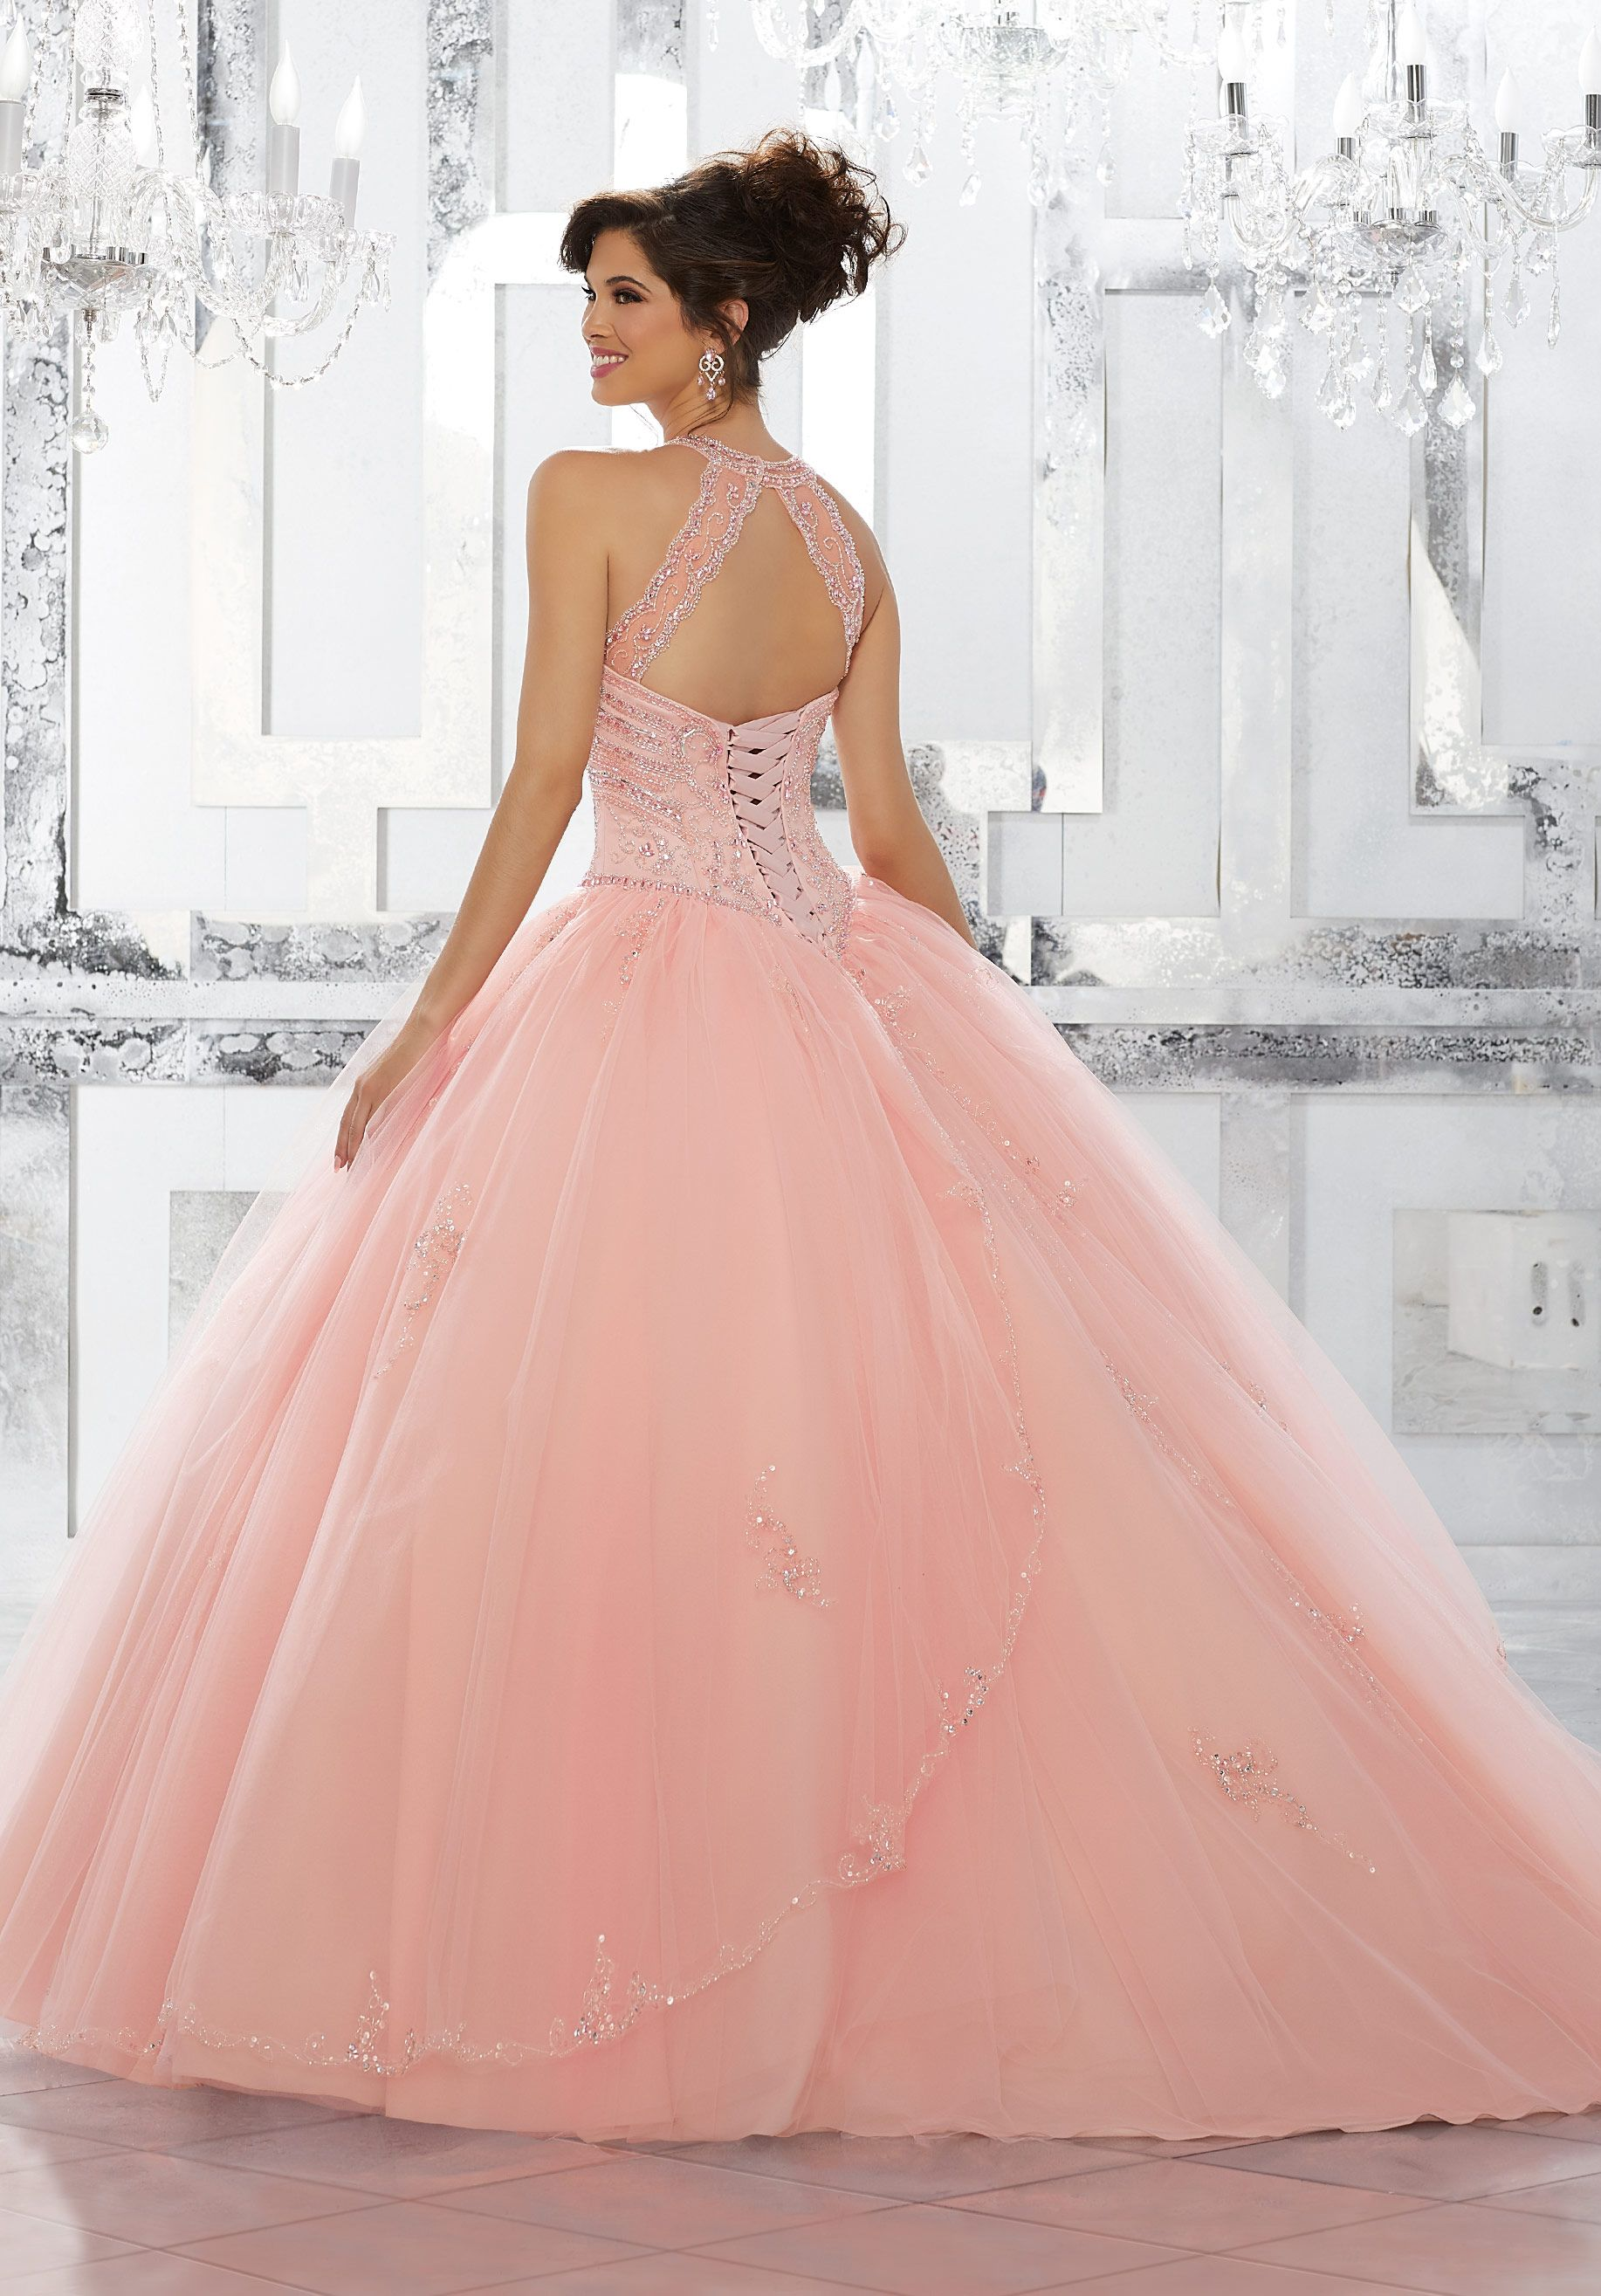 Princess Perfect, This Tulle Quinceañera Ballgown with Beaded Skirt ...